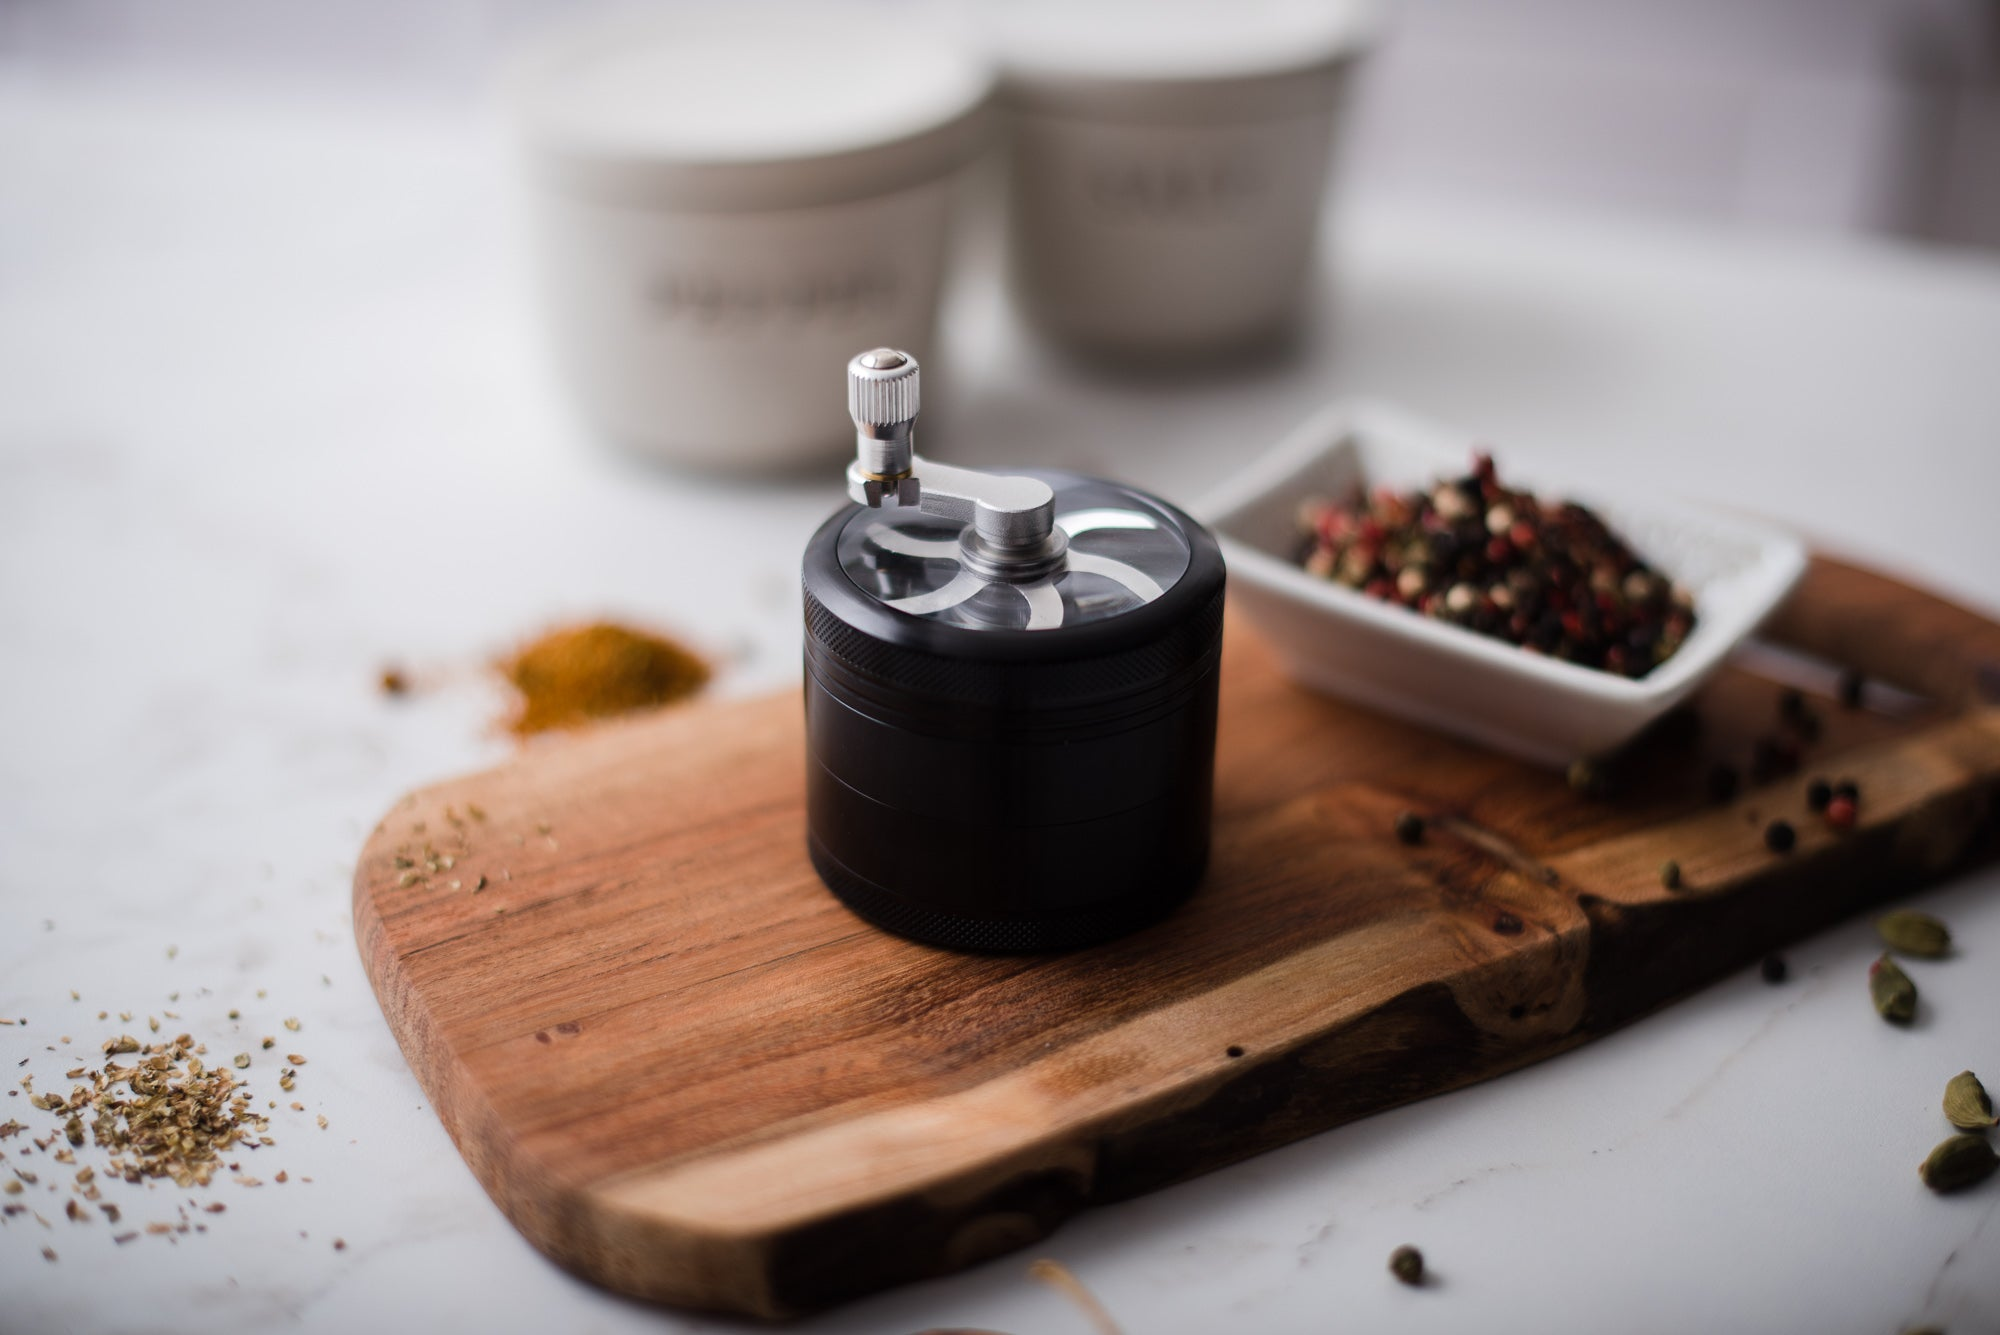 <a target='_blank' href='https://amzn.to/3hMYsrS'>Herb and Spice Grinder</a>